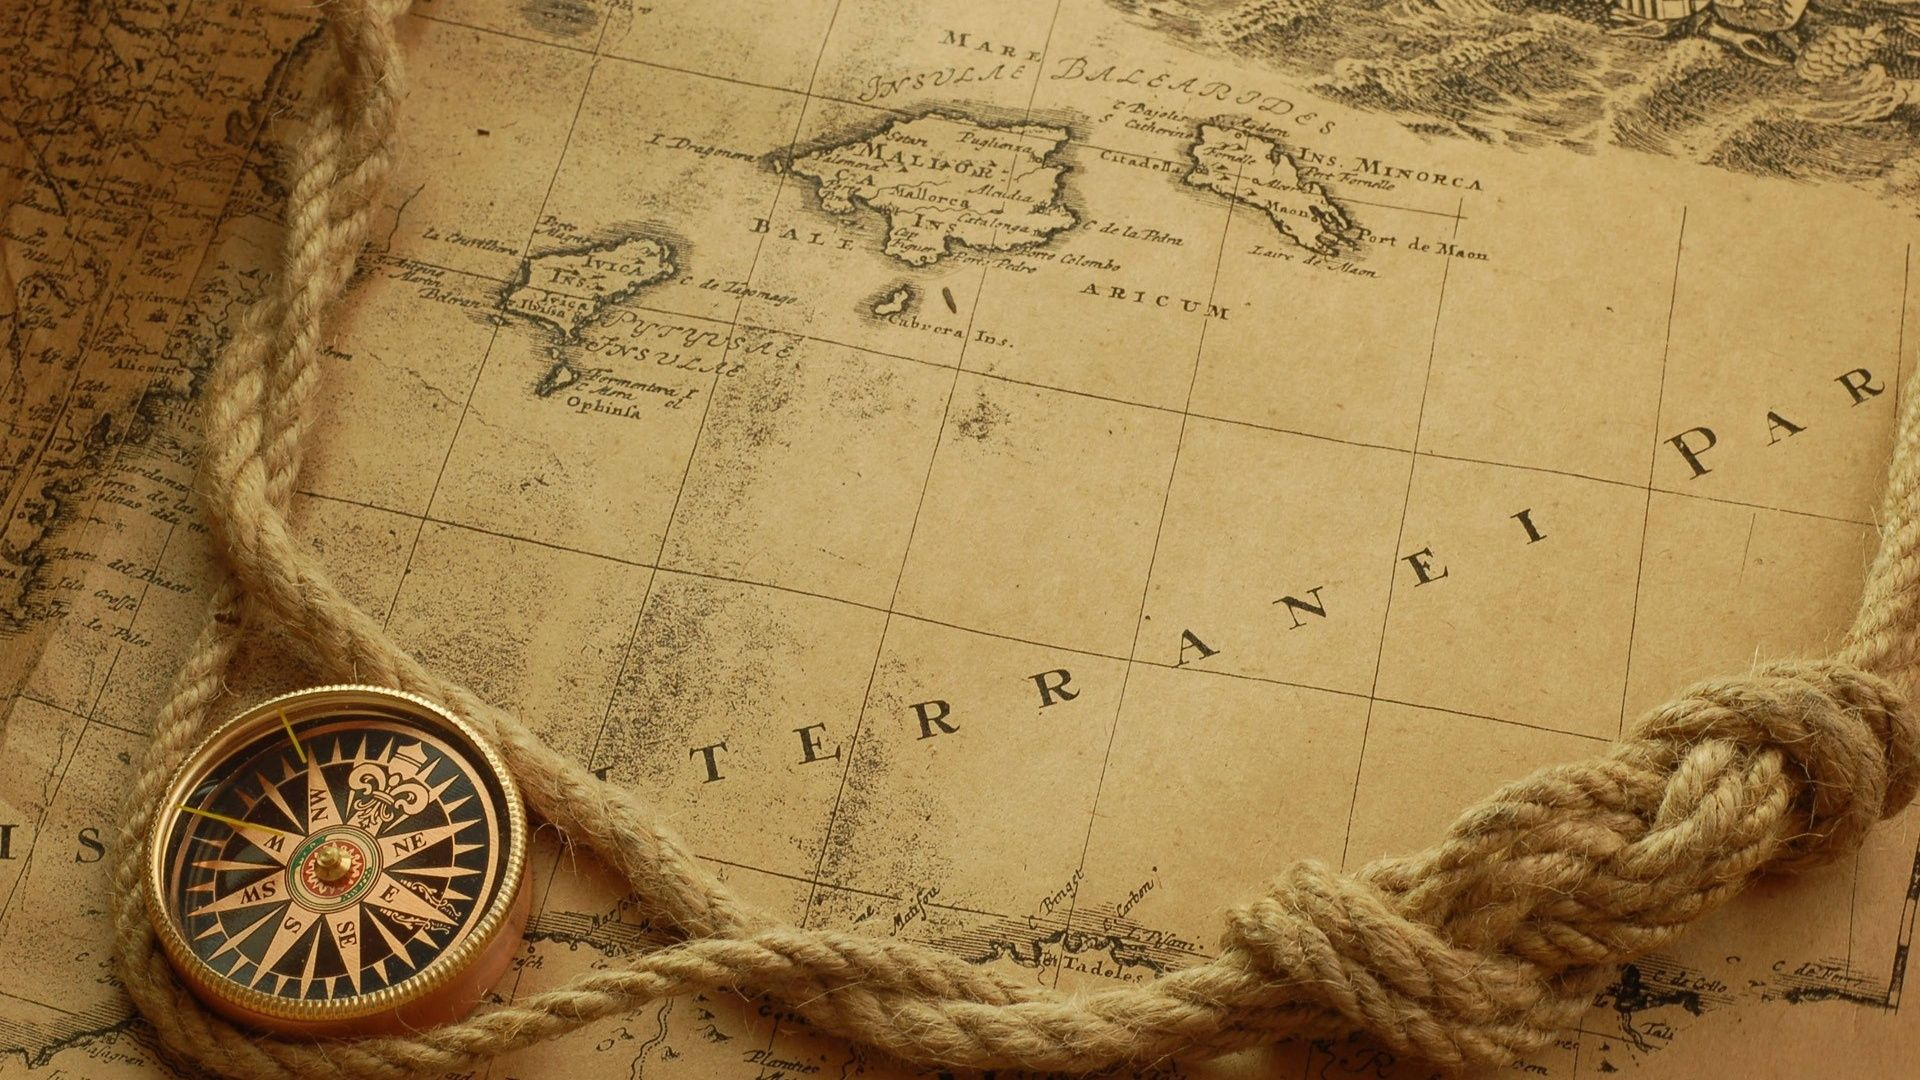 old-map-parchment-compass-rope-1920x1080.jpg (1920×1080 ...